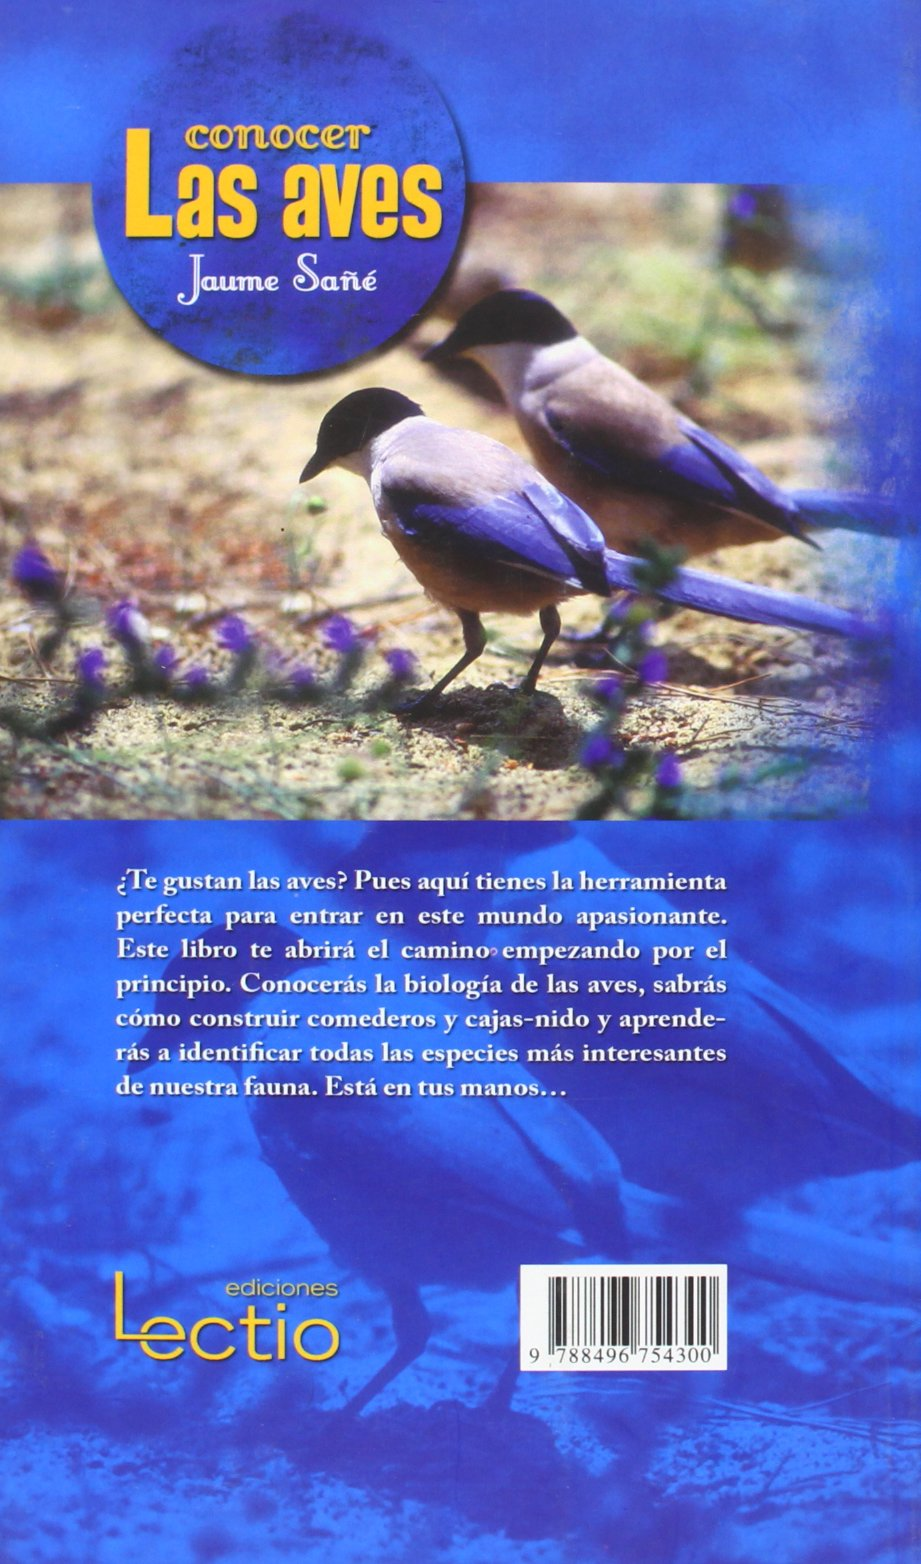 Conocer las aves (Spanish Edition): Jaume Sañé: 9788496754300: Amazon.com: Books